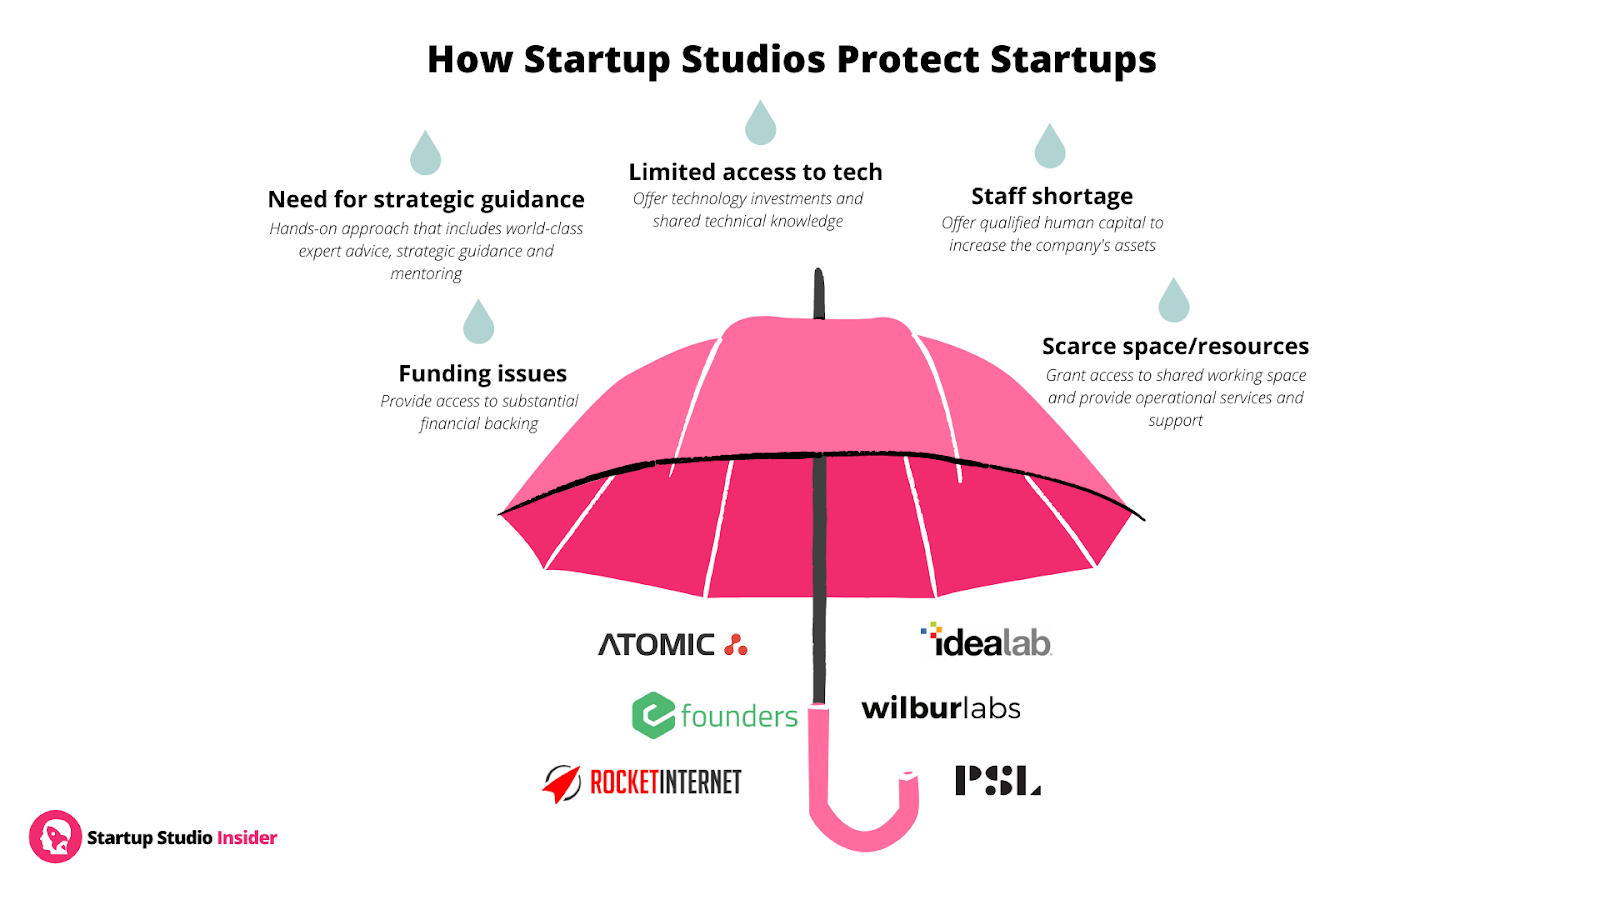 What Makes Startup Studios Successful? By Startup Studio Insider